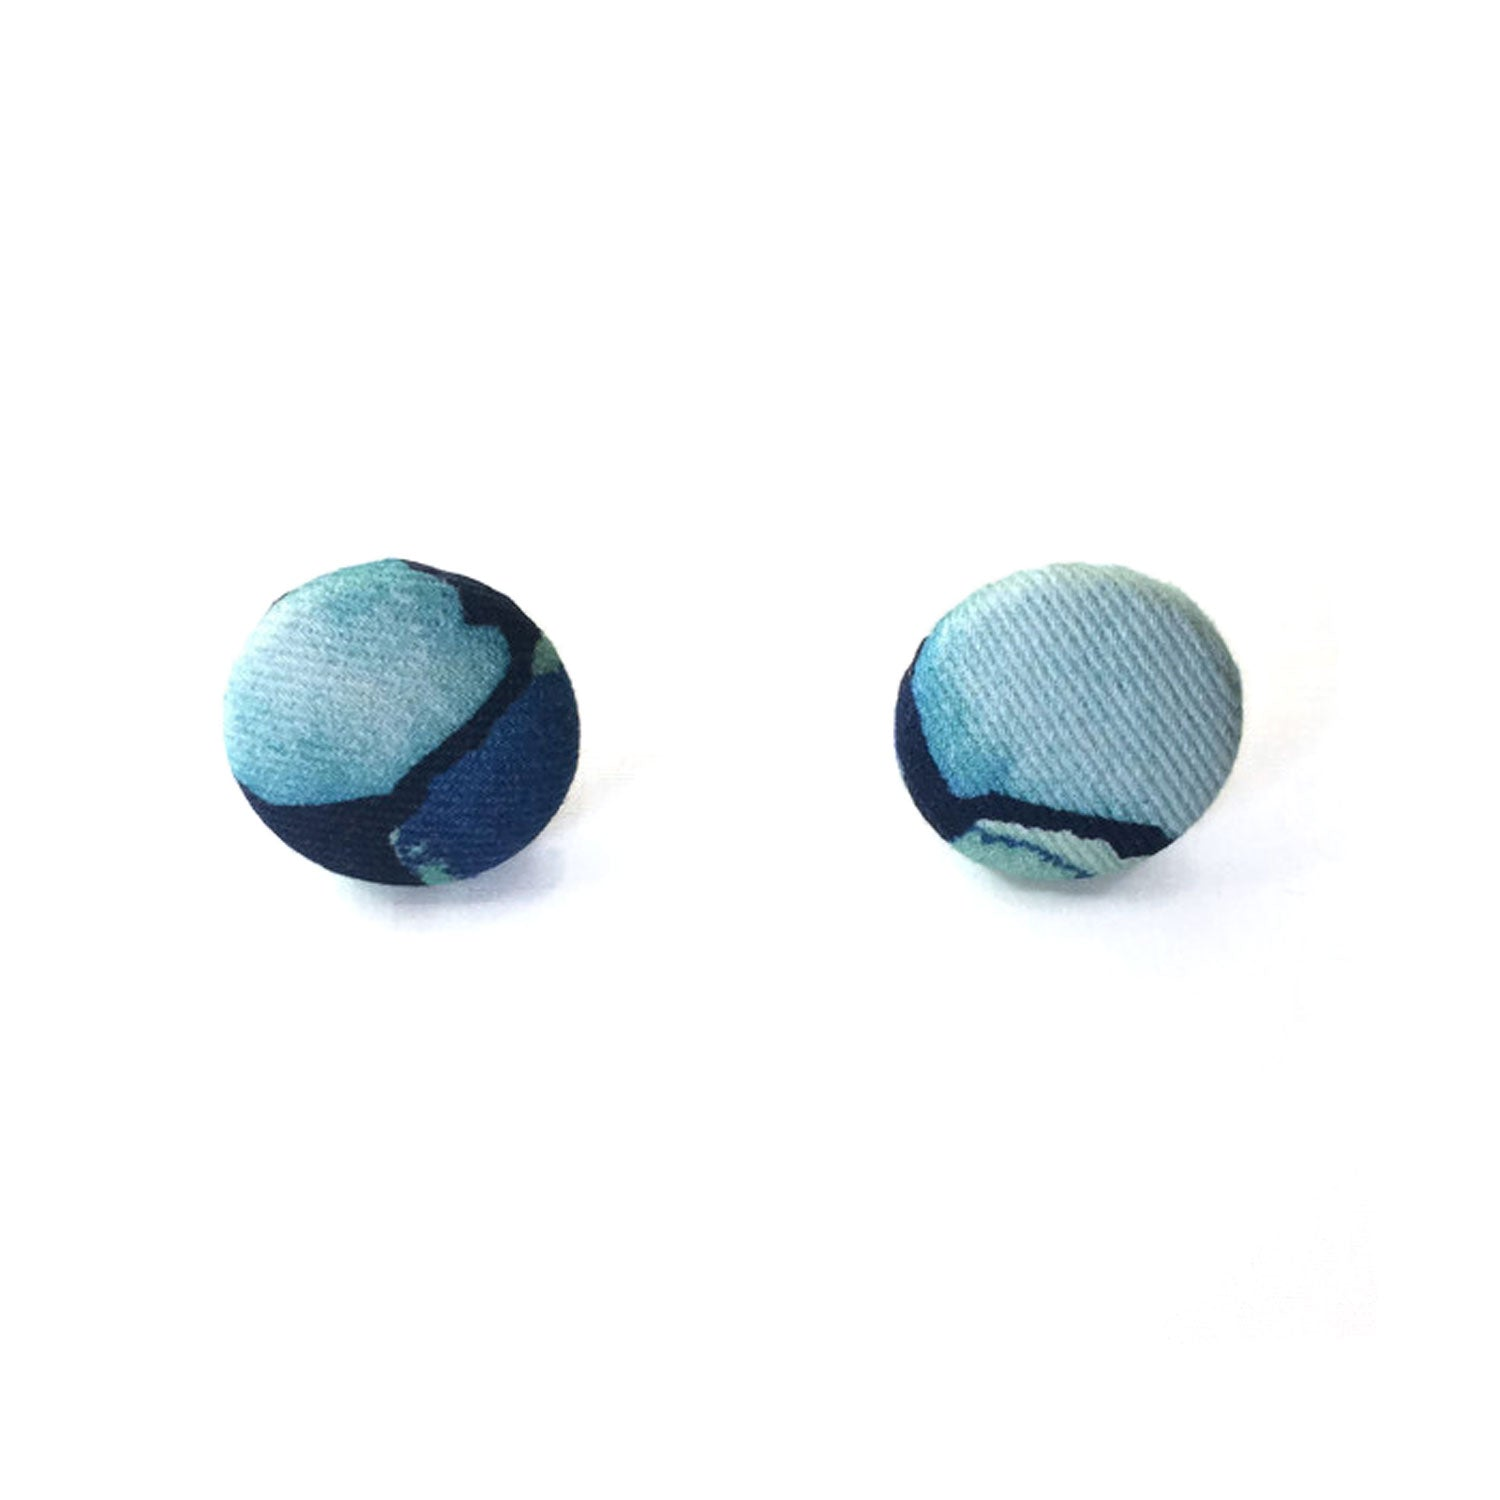 Fabric Covered Button Earrings With Geo Pattern - OlaOla